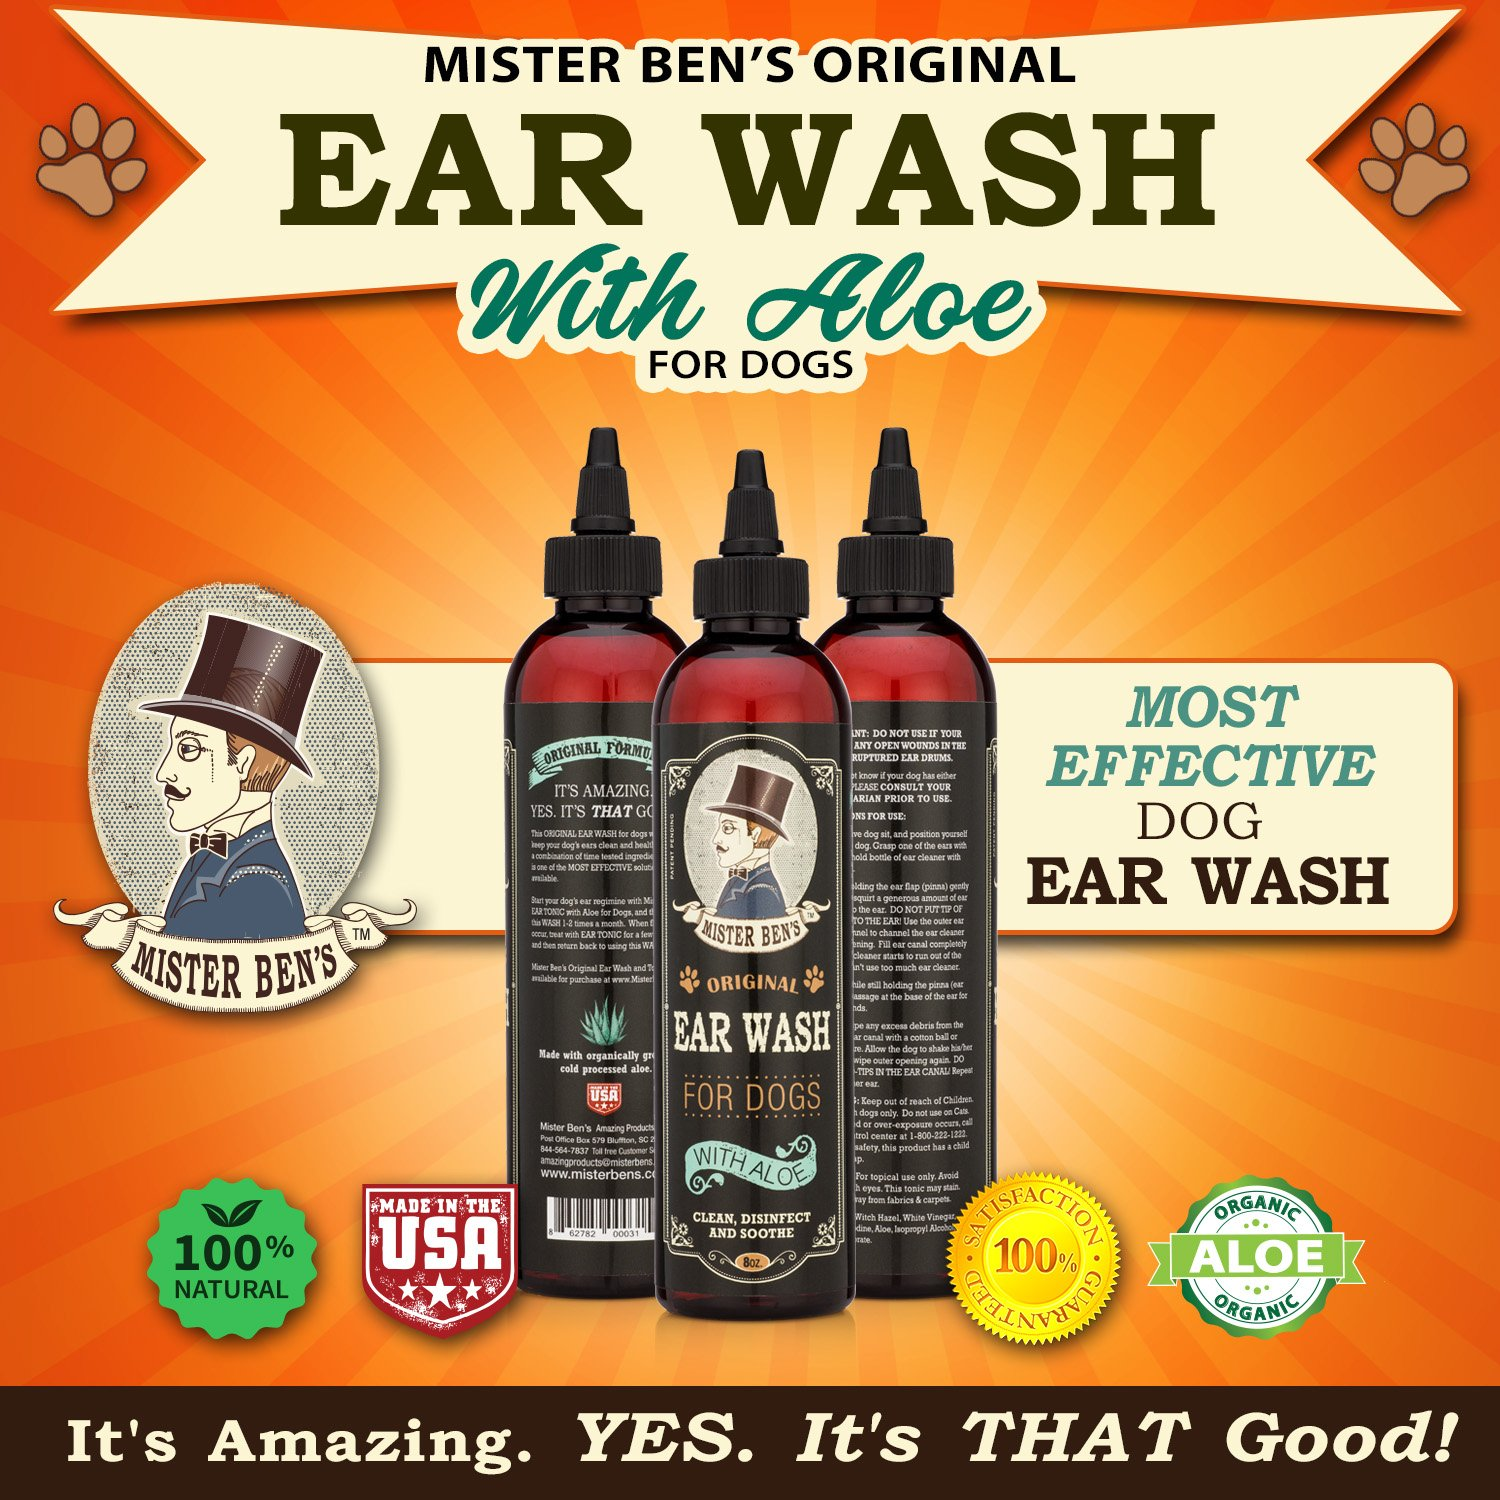 Mister Ben's MOST EFFECTIVE DOG EAR WASH Voted the Best Dog Ear Cleaner - Provides FAST RELIEF from Dog Ear Infections, Irritations, Itching, Odors, Bacteria, Mites, Fungus & Yeast by Mister Ben's (Image #6)